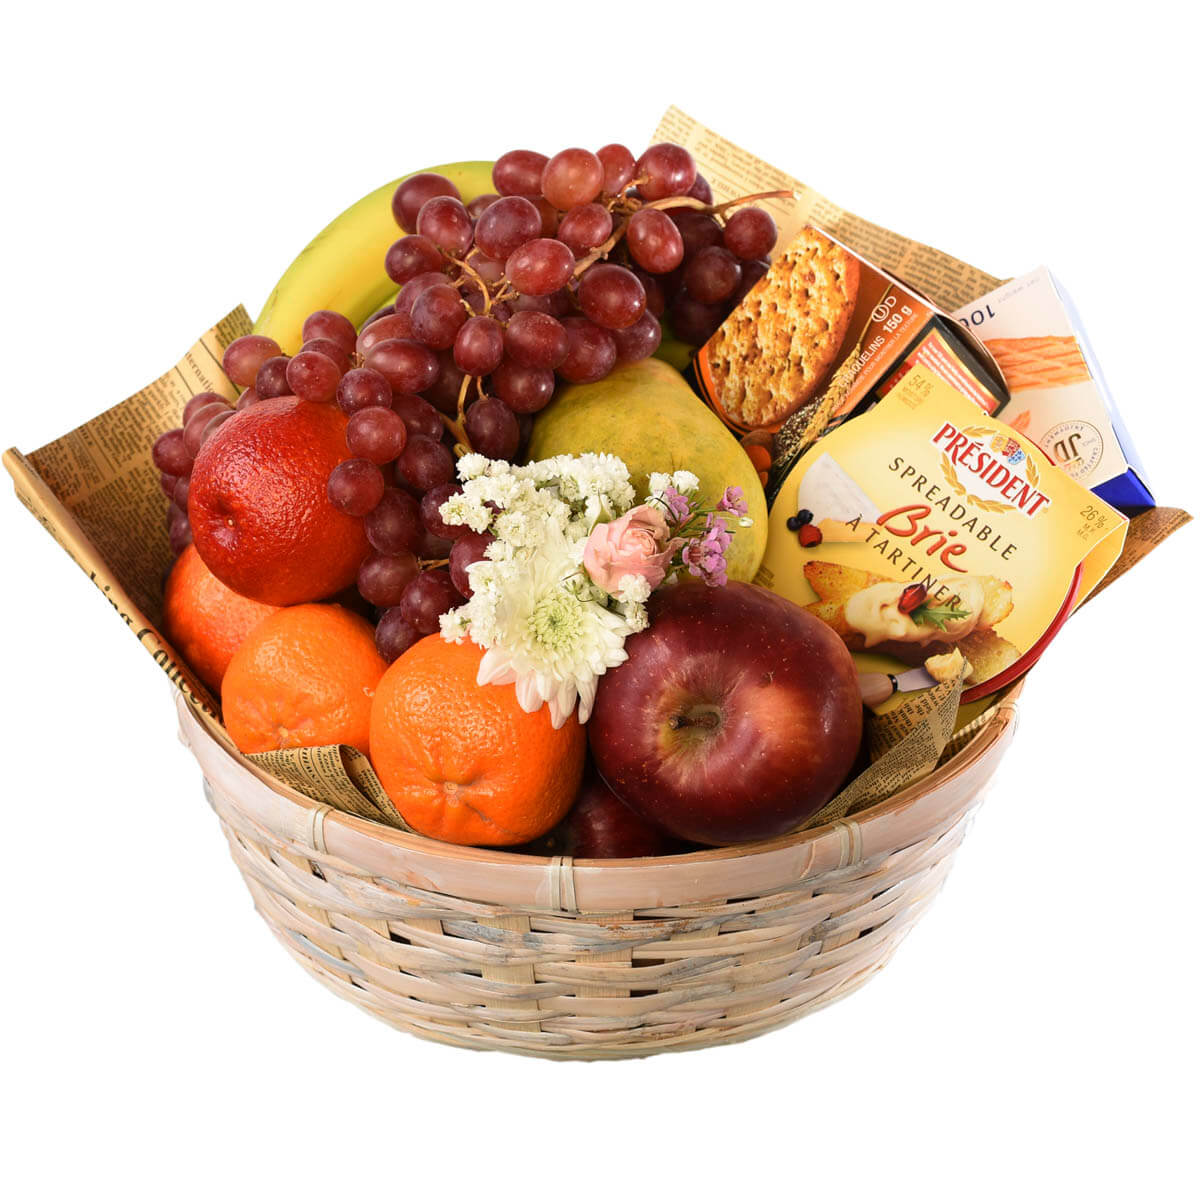 Food basket delivery in Vancouver BC | Adele Rae Florists